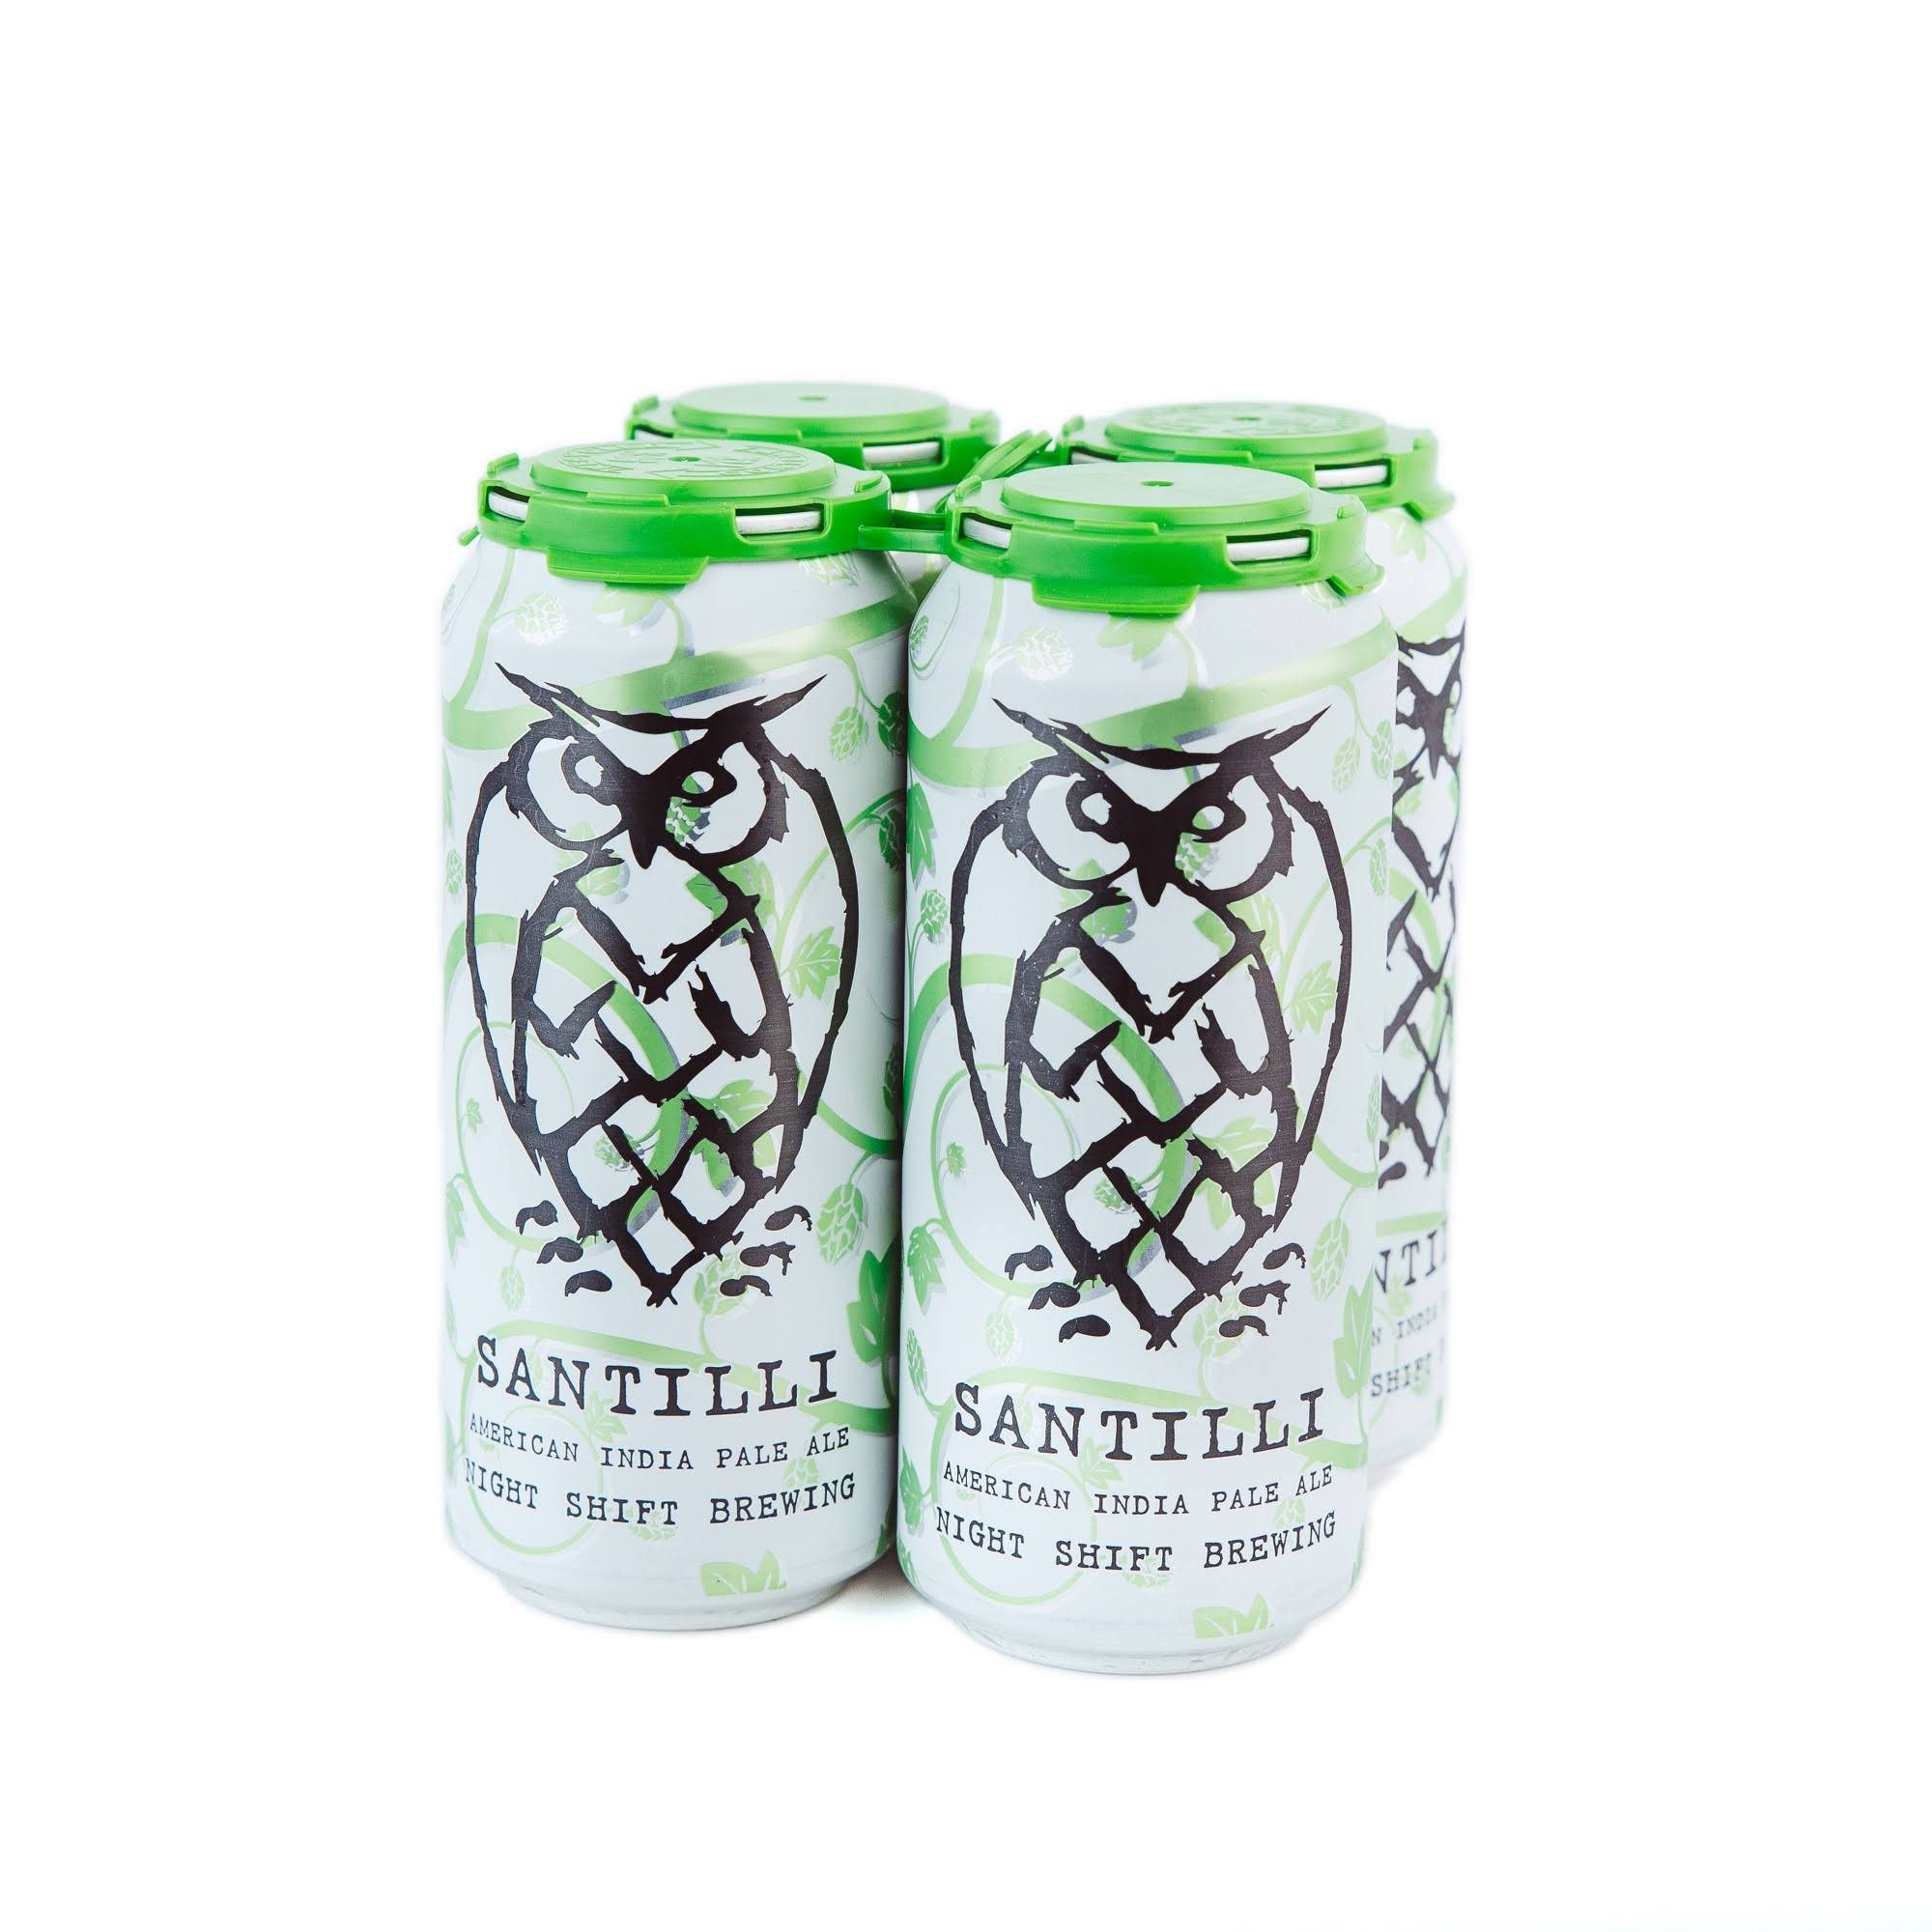 Night Shift Brewing Santilli Inida Pale Ale - 16 fl oz